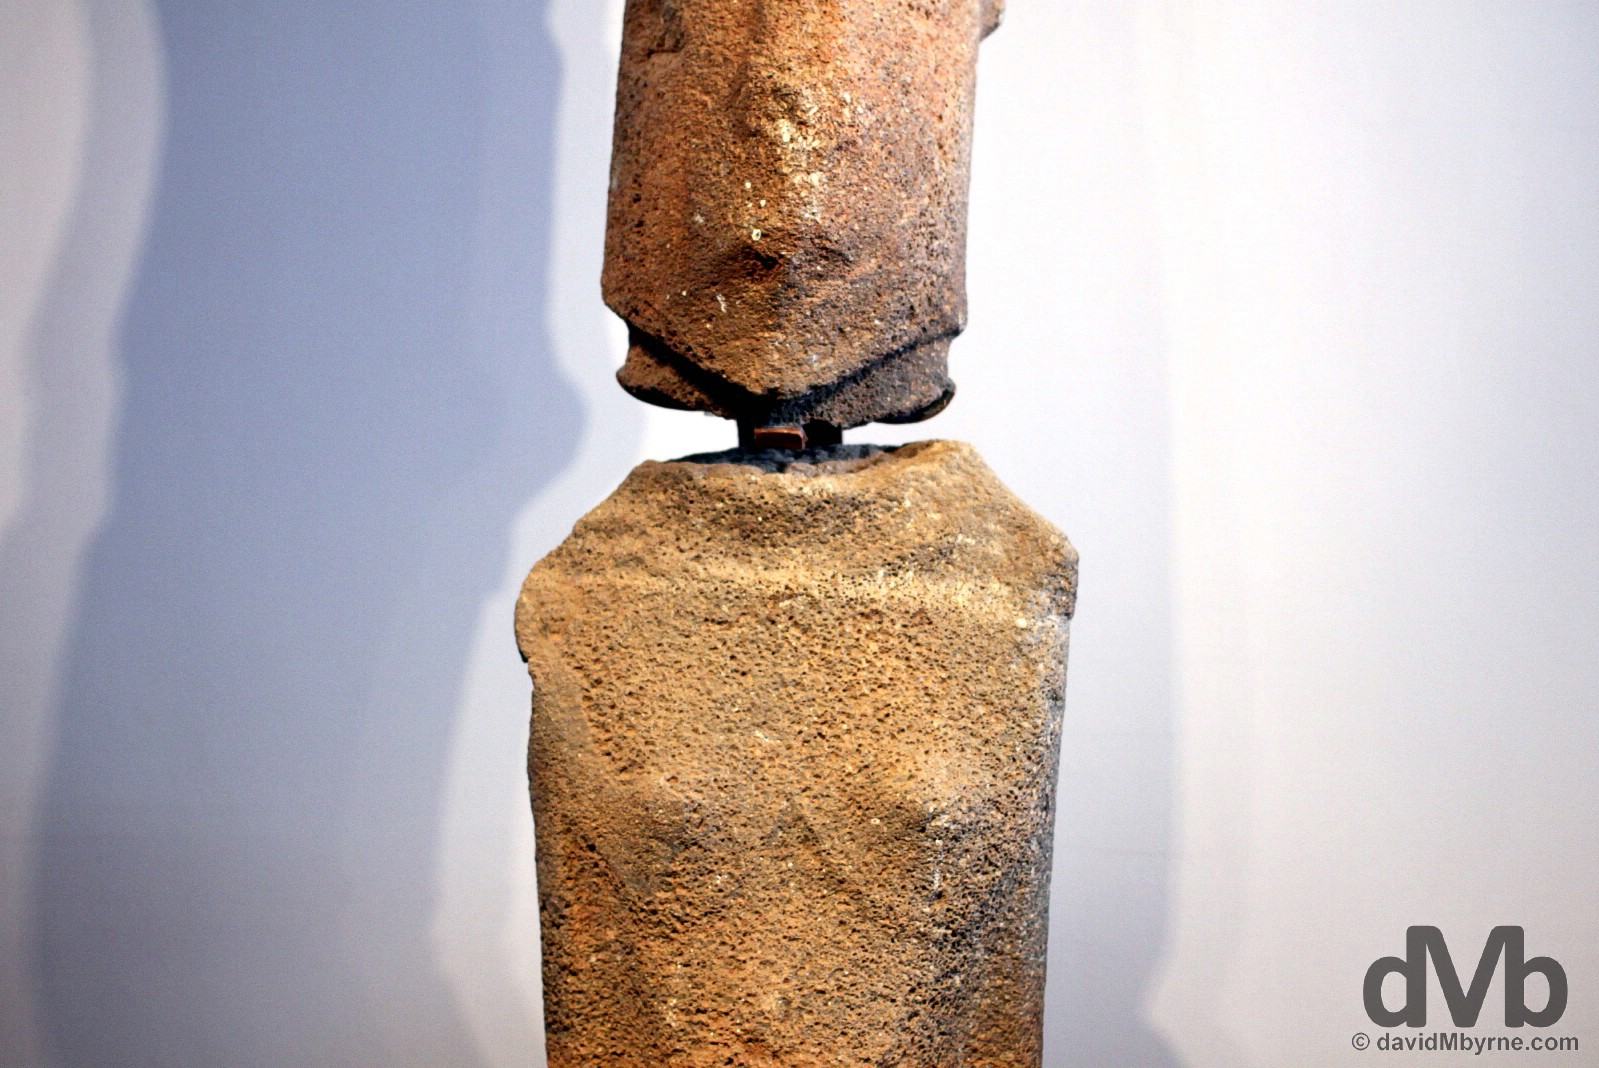 A female moai on display in the Museo Antropologico P. Sebastian Englert, Hanga Roa, Easter Island, Chile. September 30, 2015.